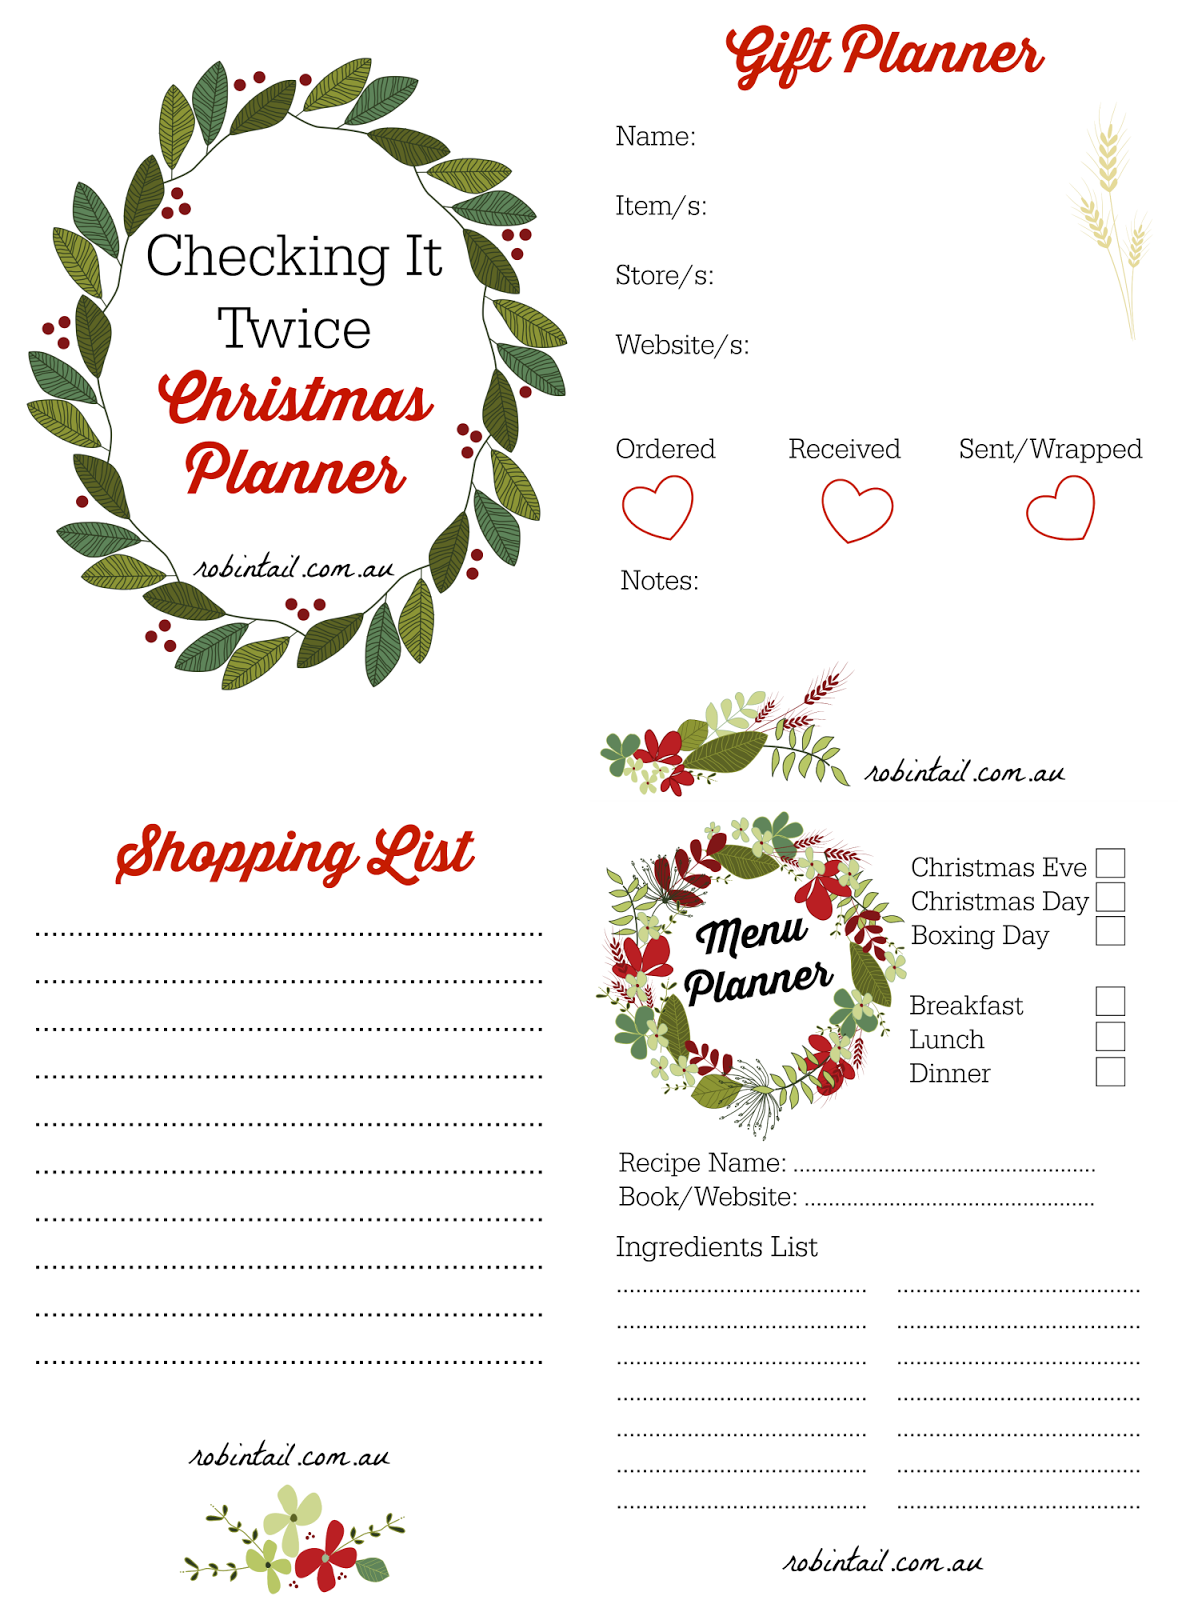 Robintail: Free Printable Christmas Planner